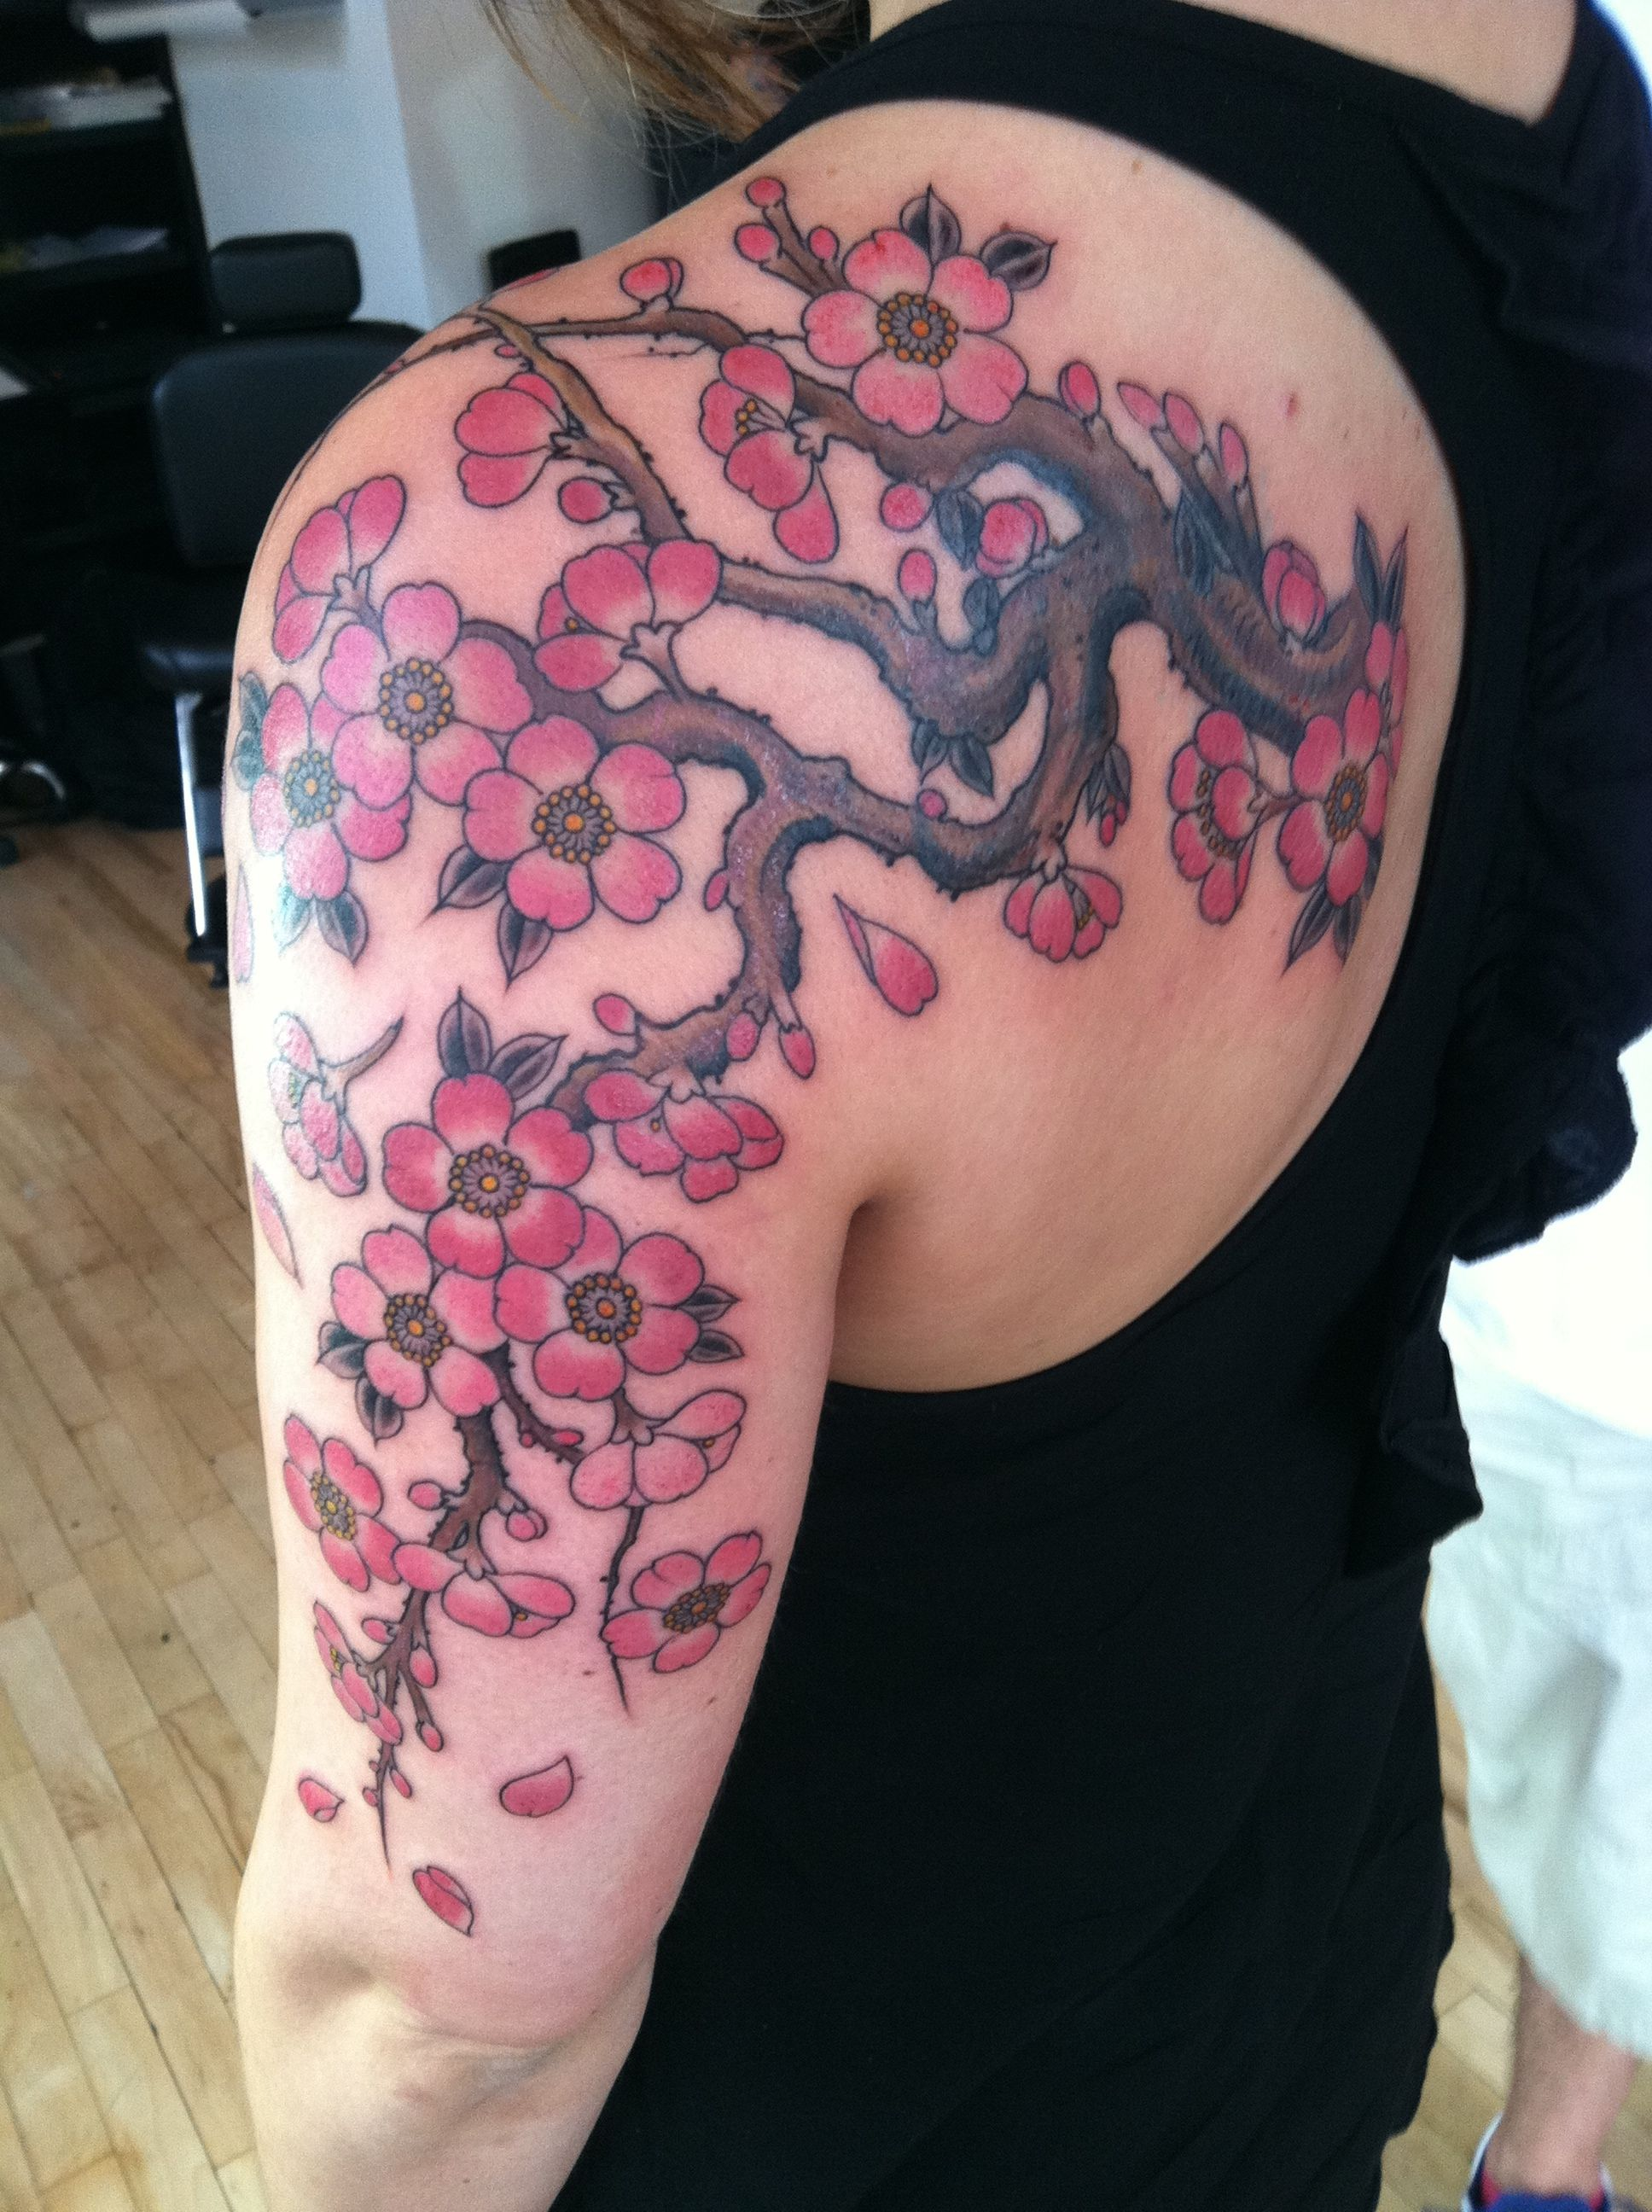 Cherry Blossom Tattoos And Meanings Cherry Blossom Tattoo Designs And Ideas Cherry Tree Tattoos Tree Tattoo Designs Cherry Blossom Tattoo